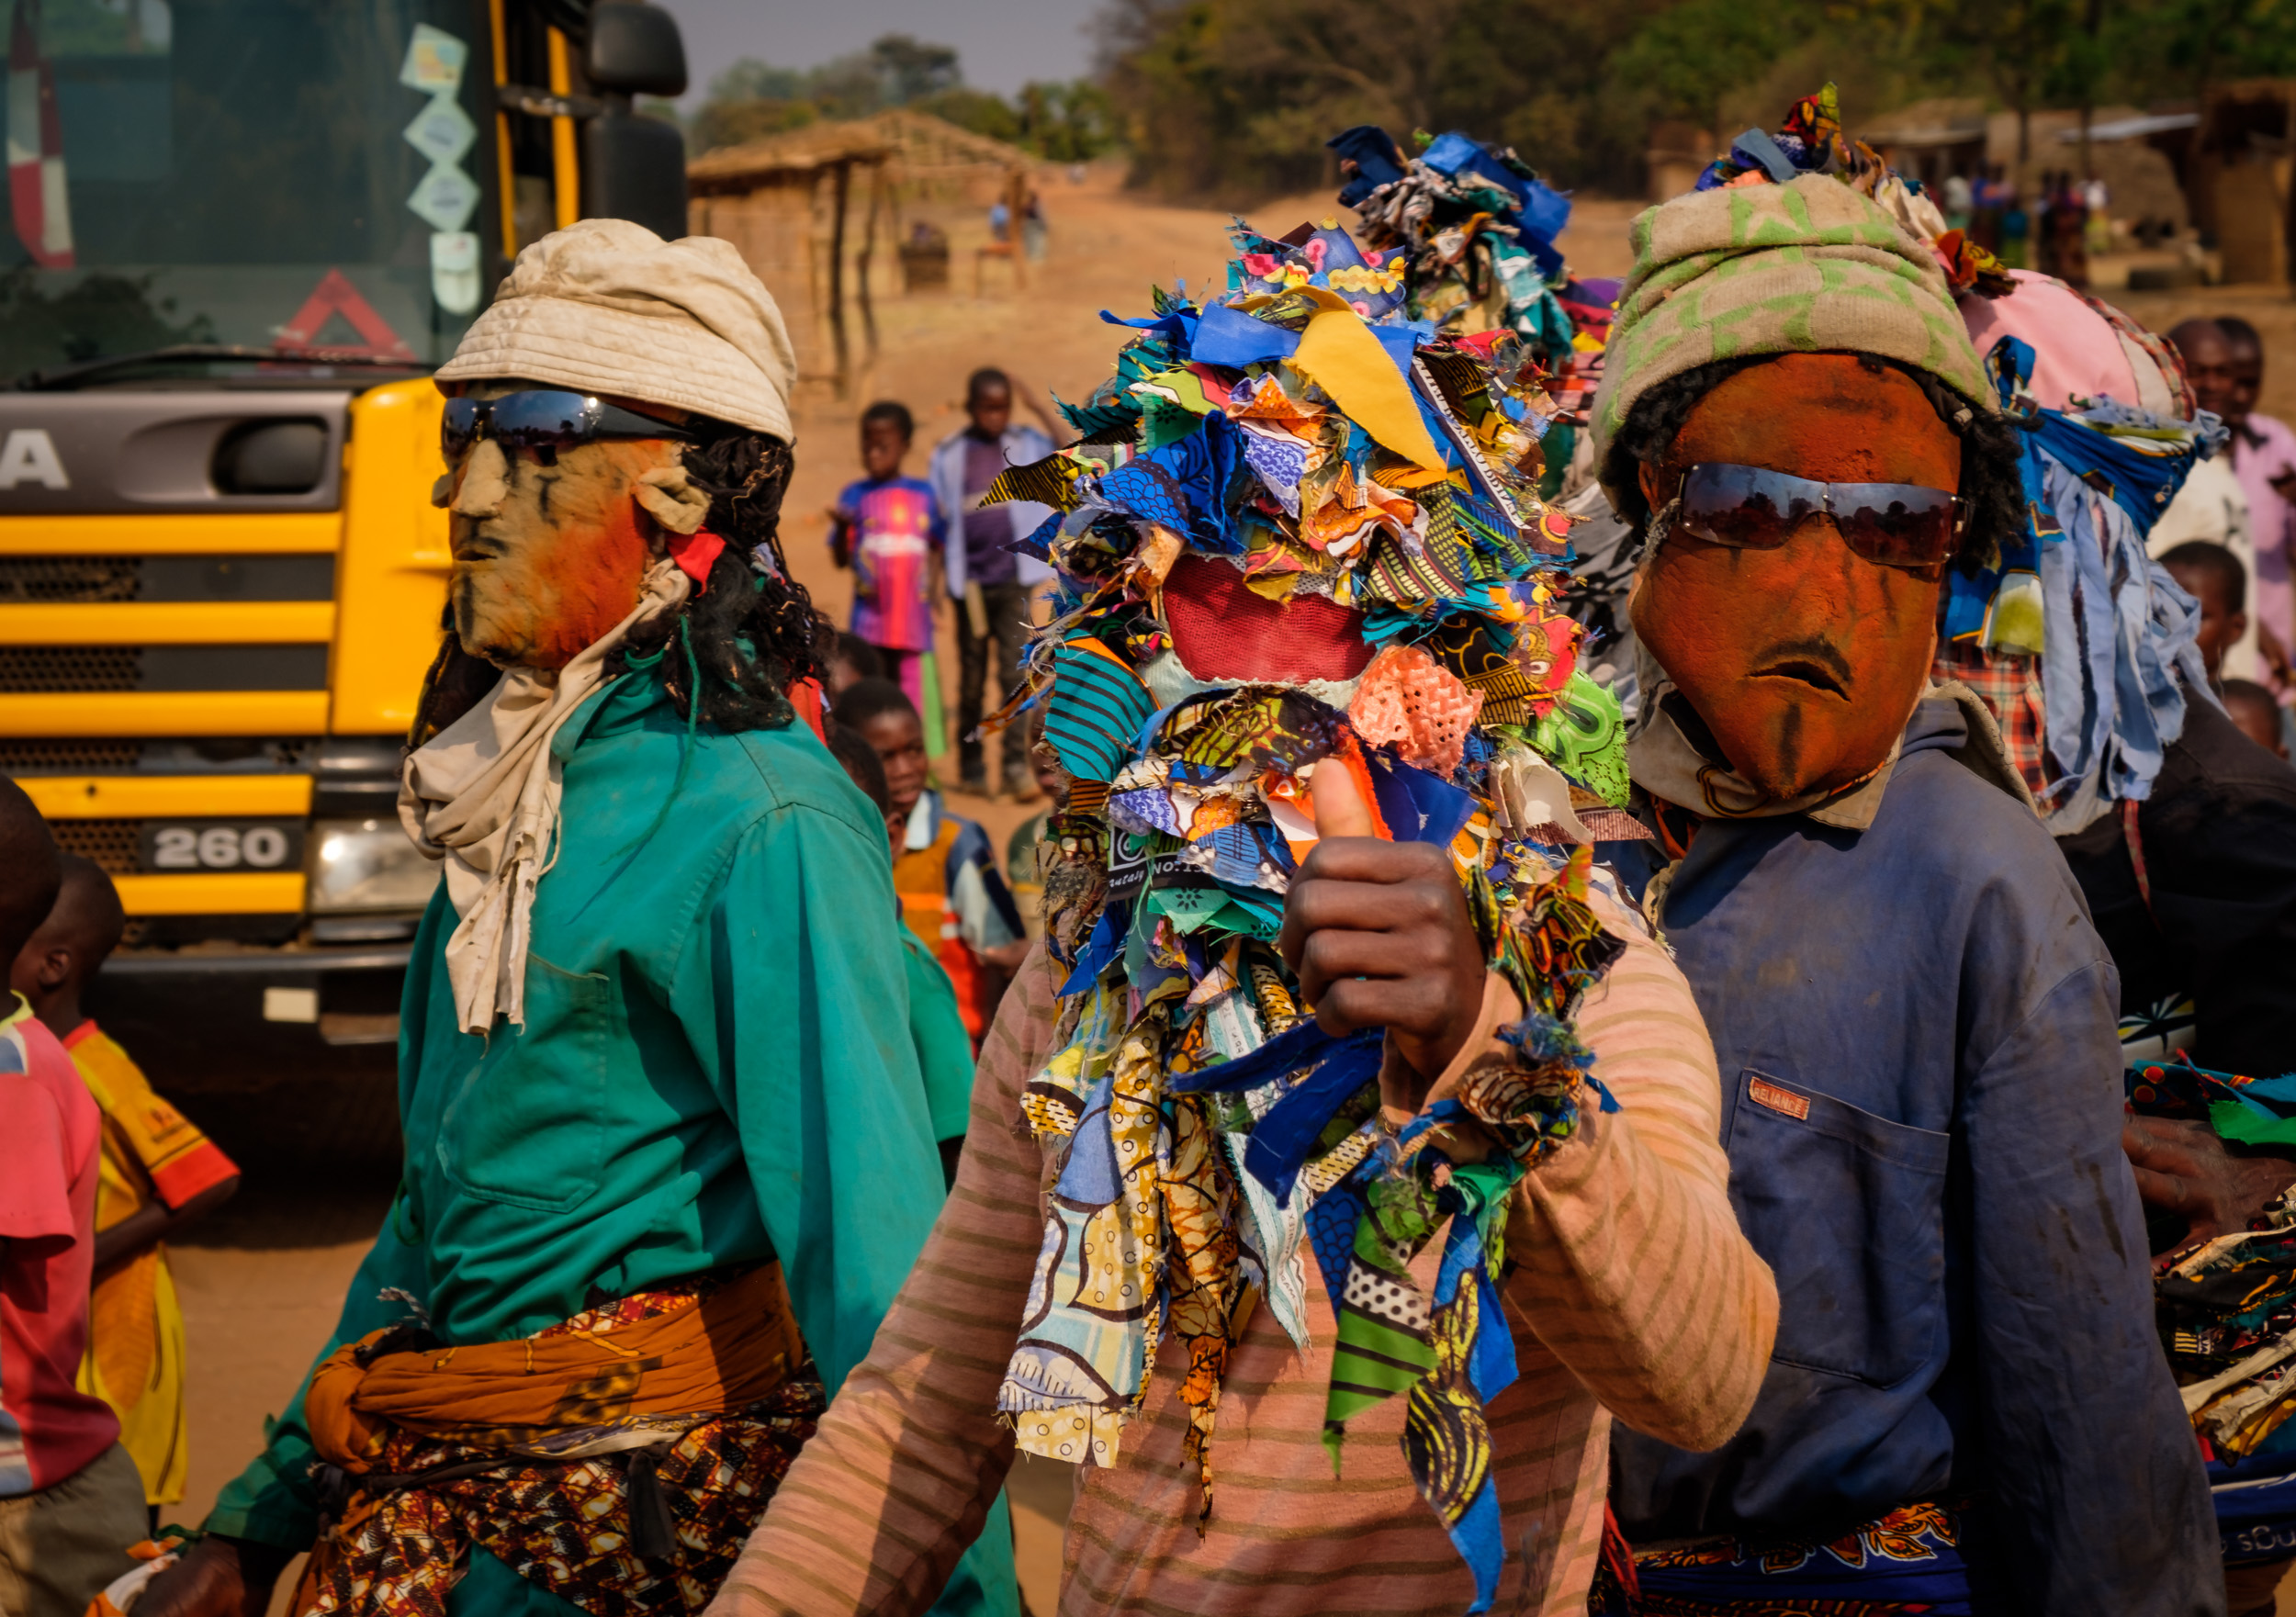 he dancers with their masks walked with the crowd to the house of the new chief before parading to the event.